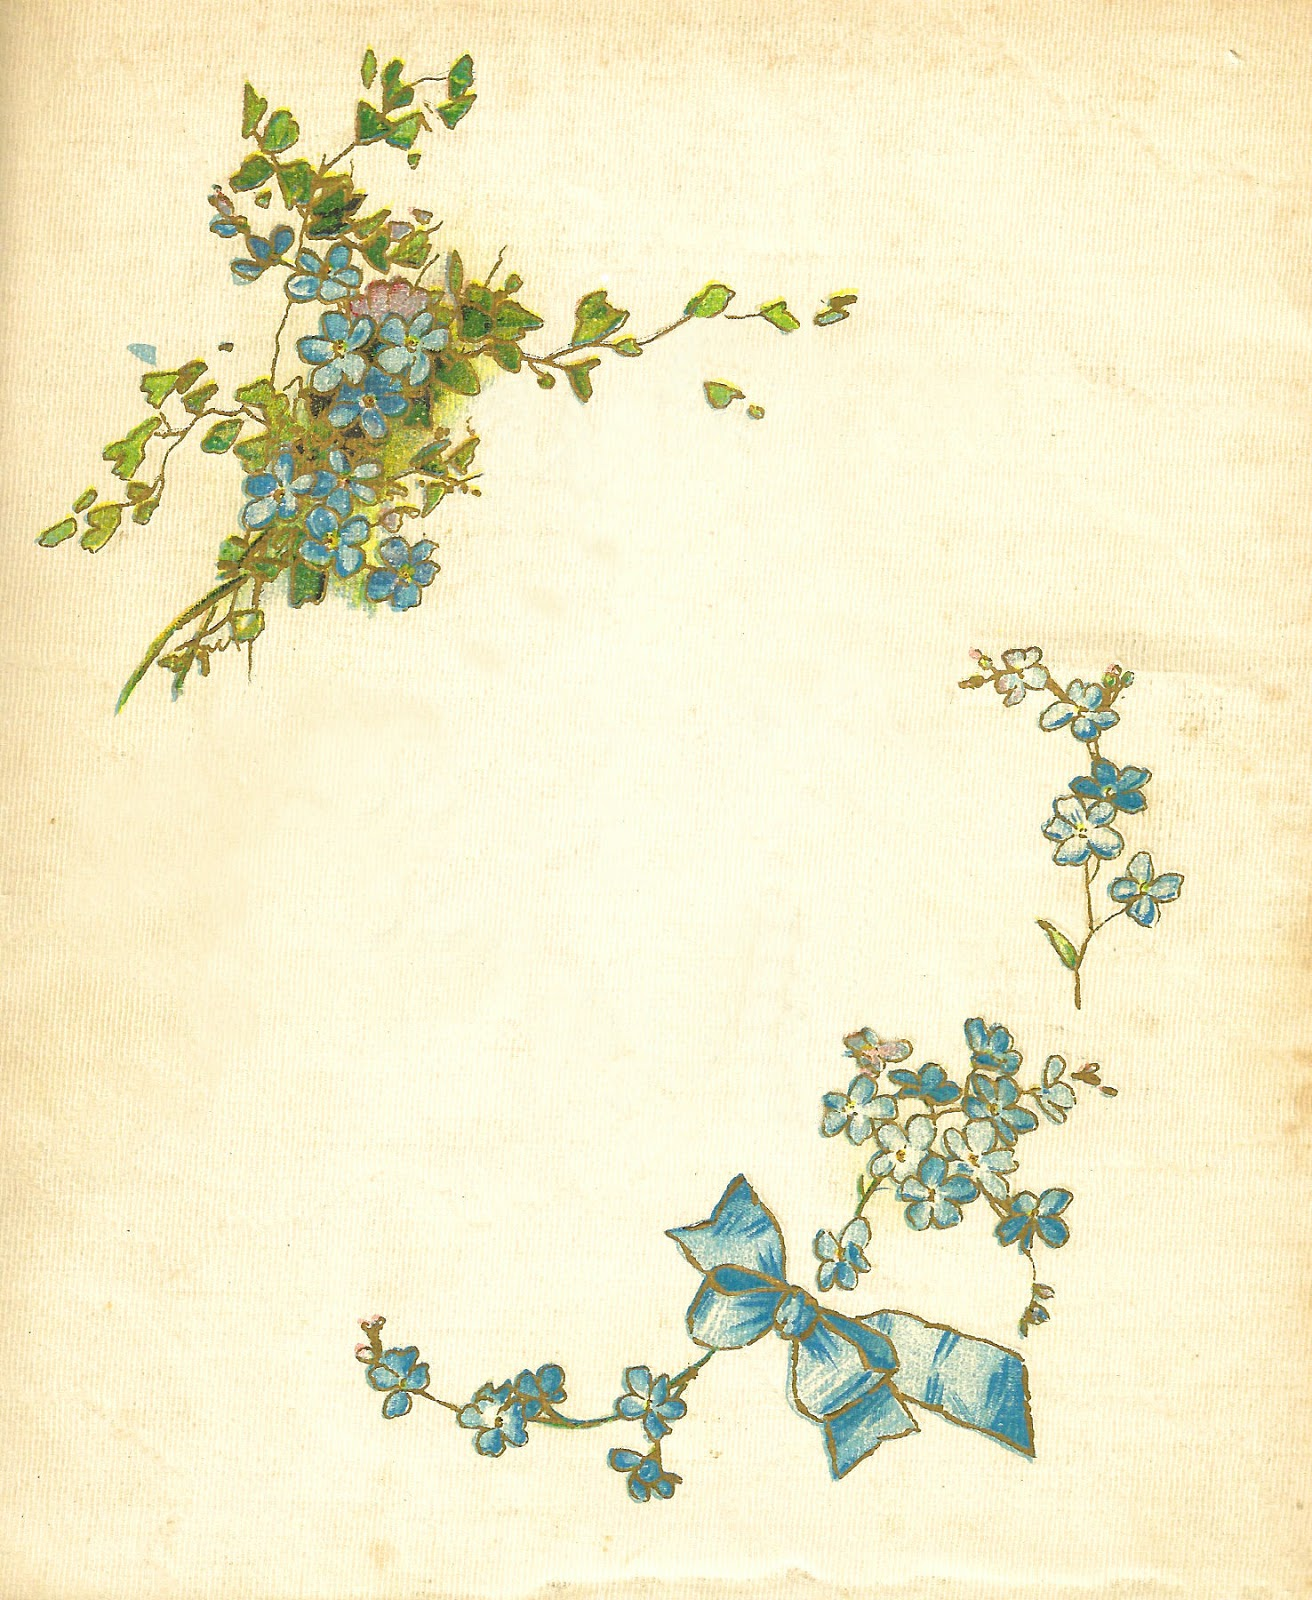 Vintage Flower Book Cover : Antique images free flower graphic vintage book cover